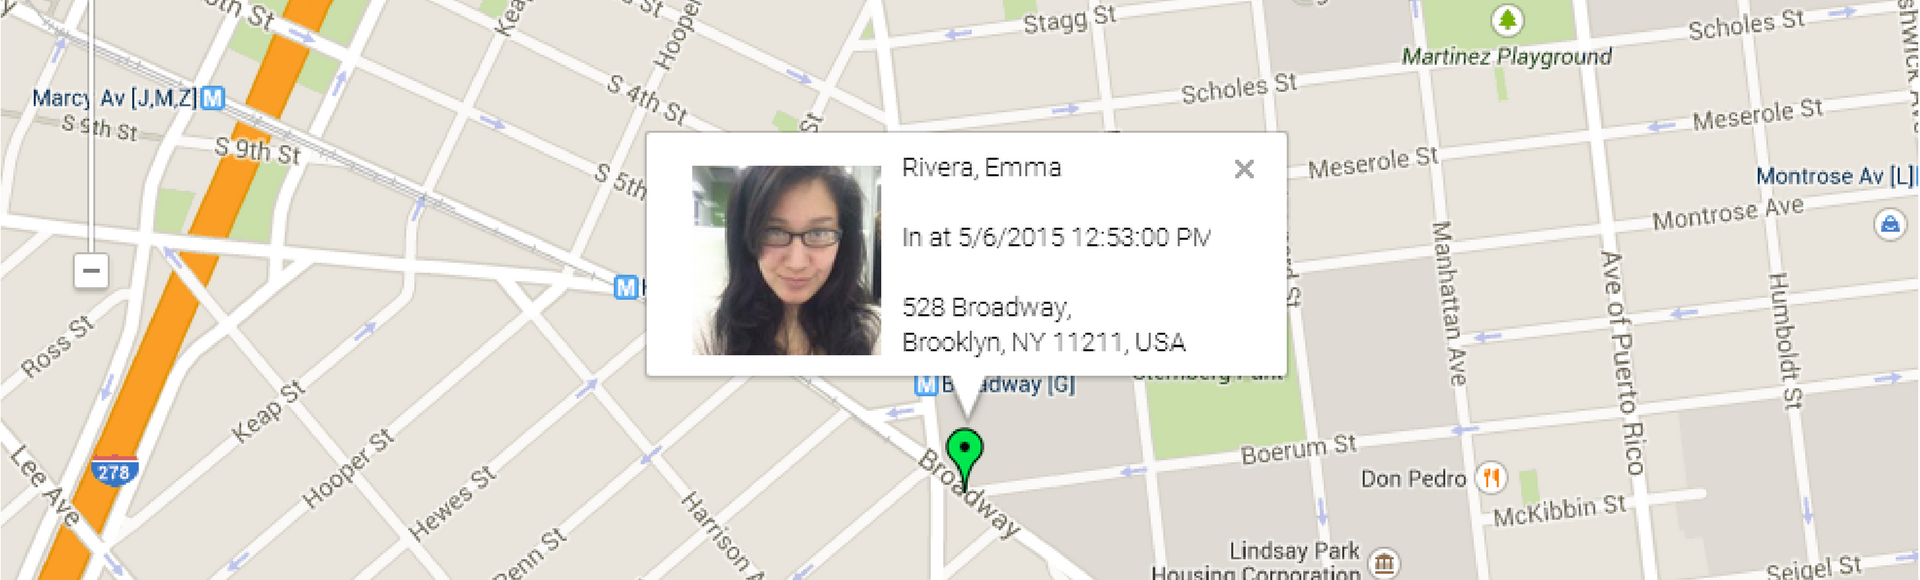 Fingercheck New GEO Live Map: punch photo of employee displayed on google maps